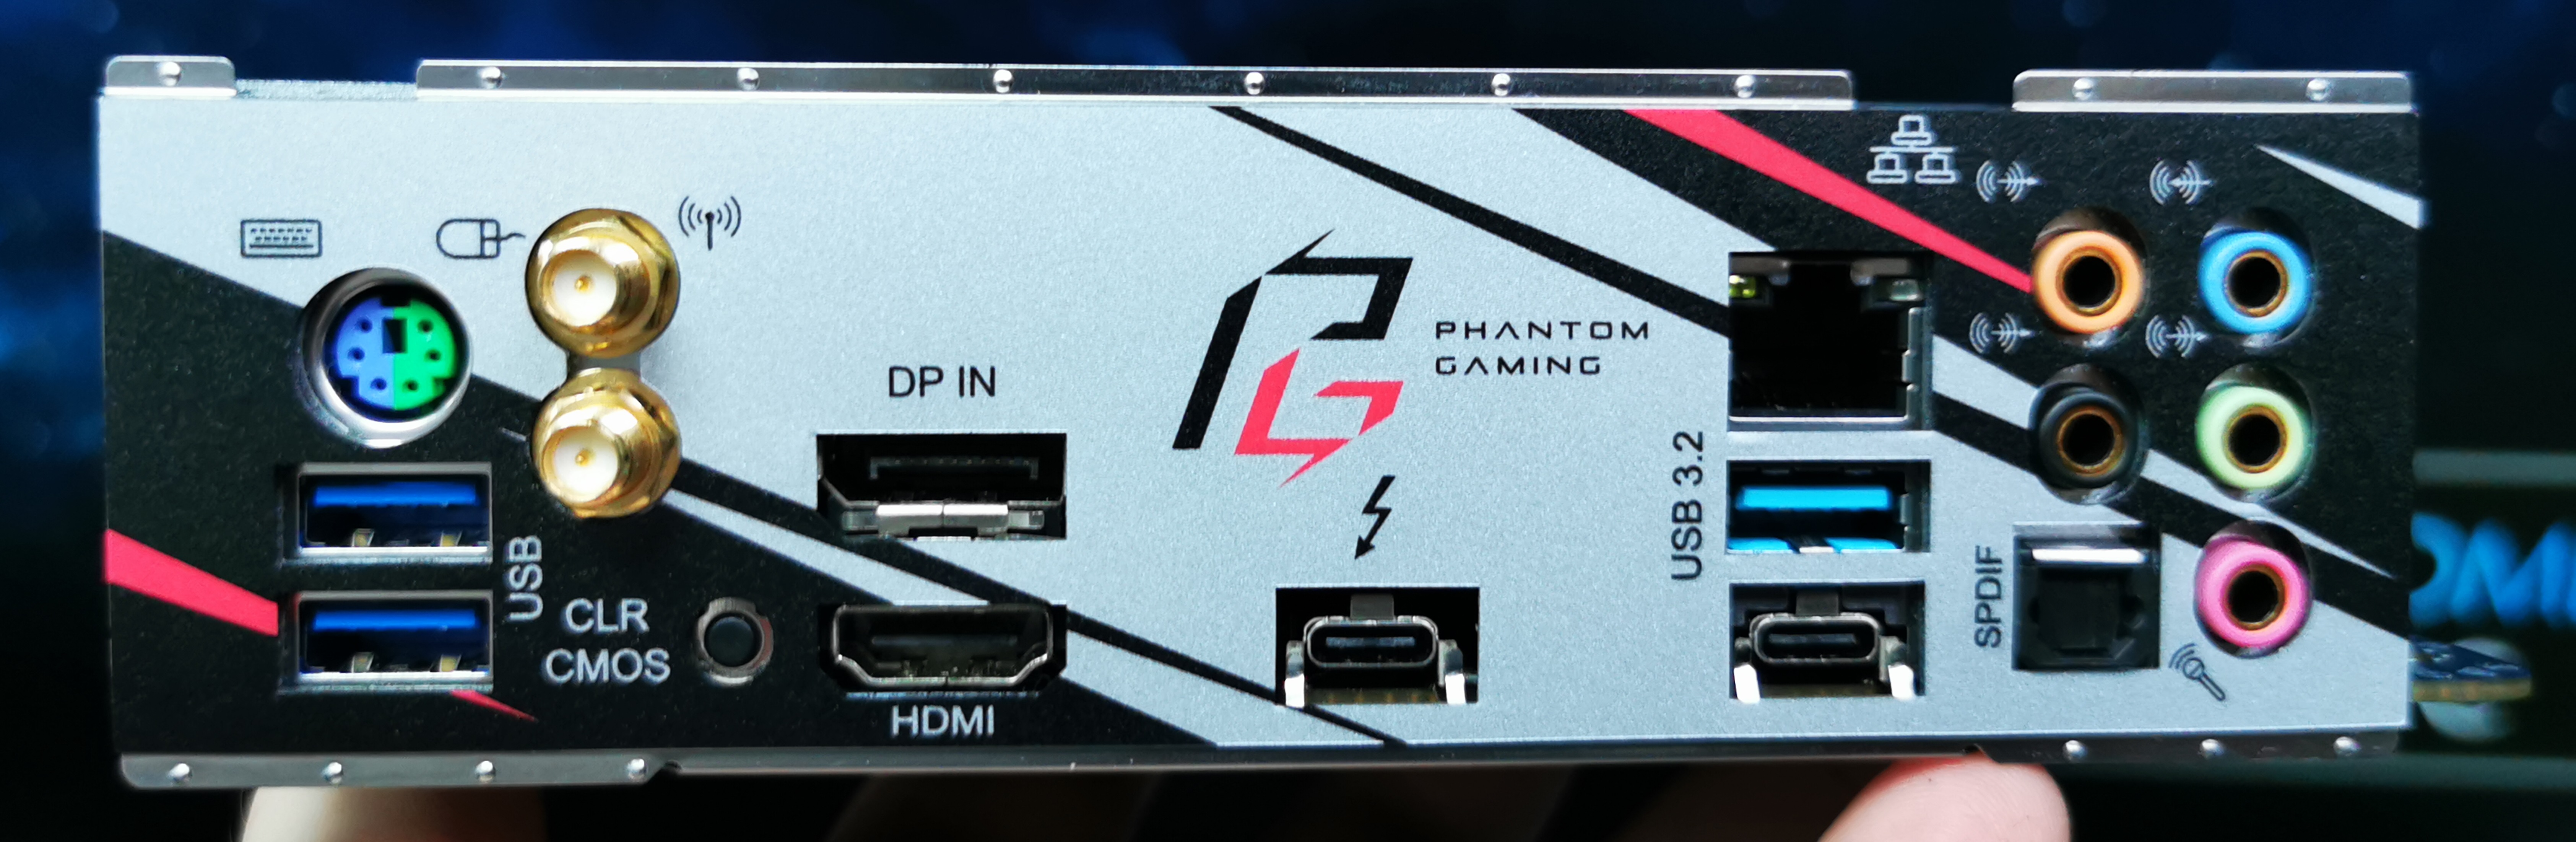 ASRock X570 Phantom Gaming-ITX TB3: The Small Motherboard with a